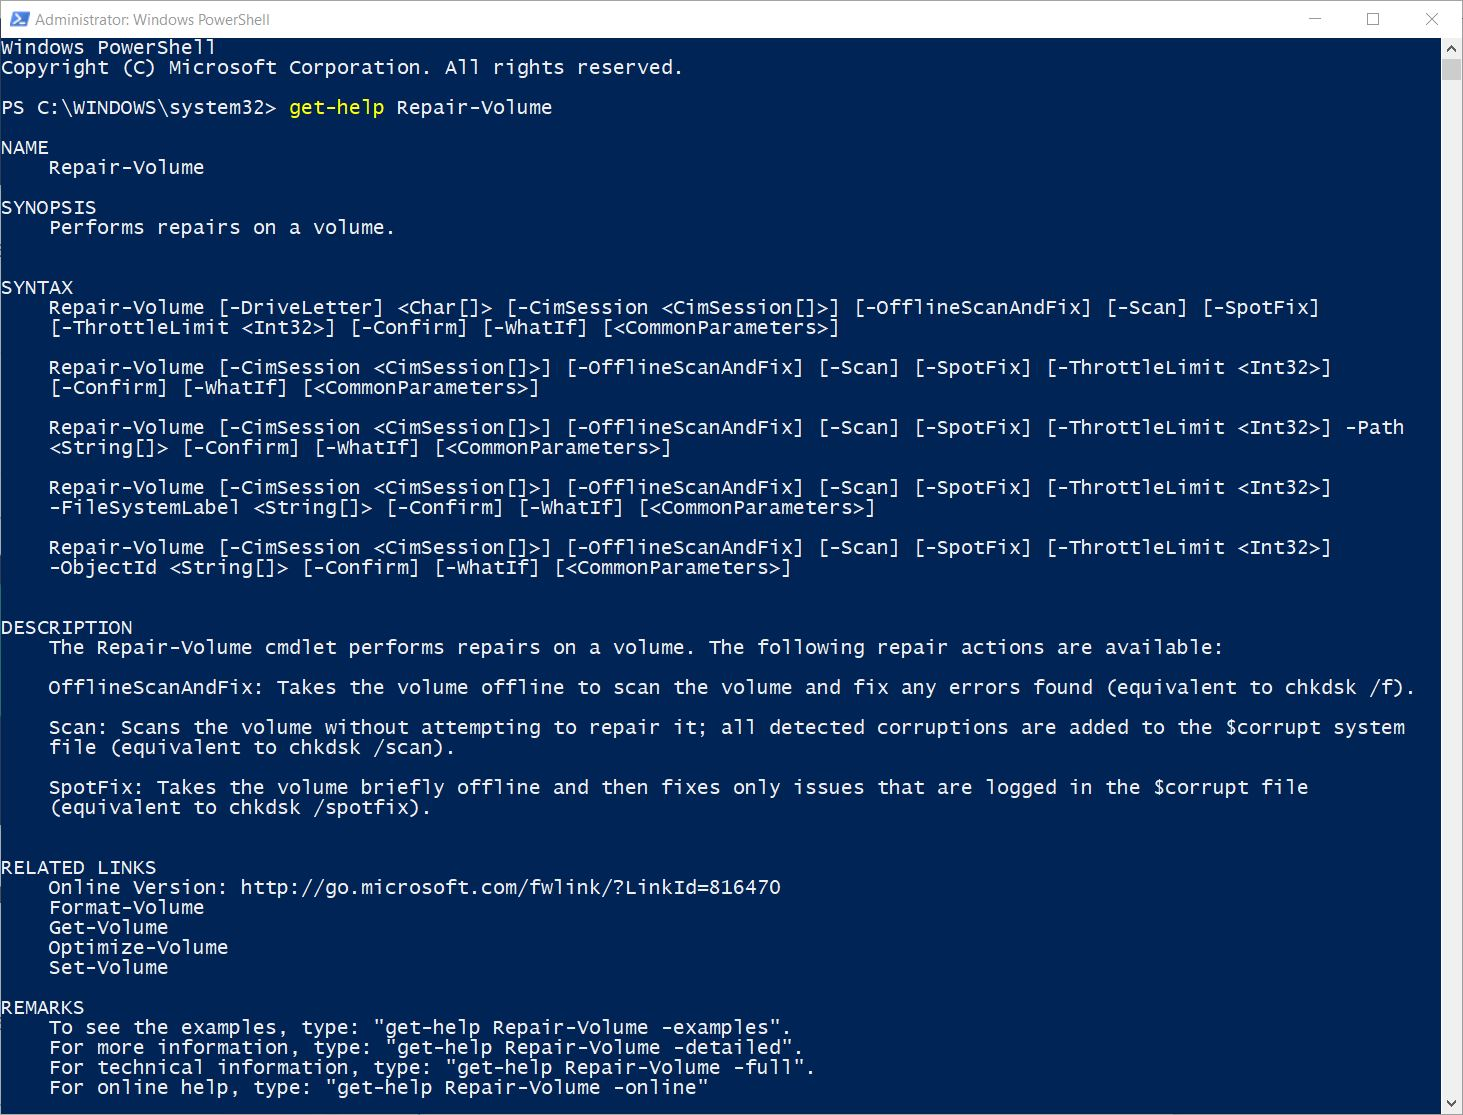 Win10 PowerShell Chkdsk Alternative